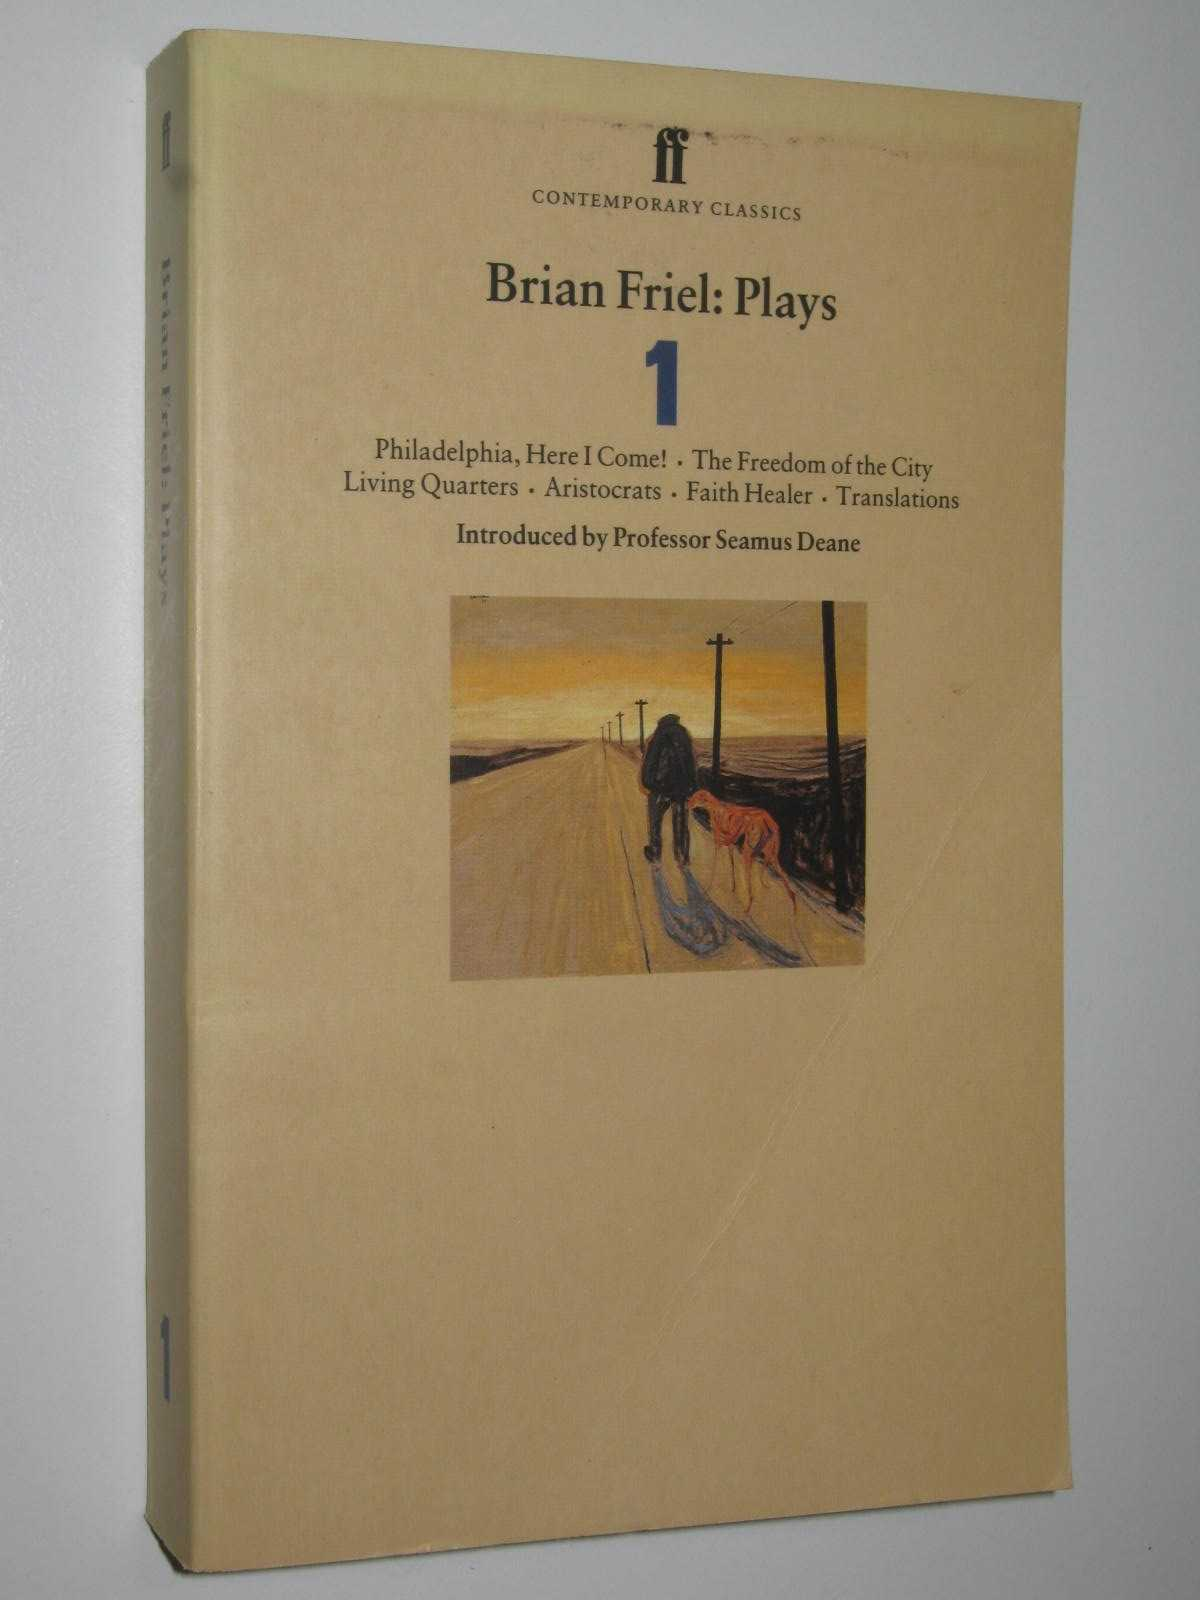 Image for Brian Friels: Plays One : Philadelphia, Here I Come! + The Freedom of the City + Living Quarters + Aristocrats + Faith Healer + Translations